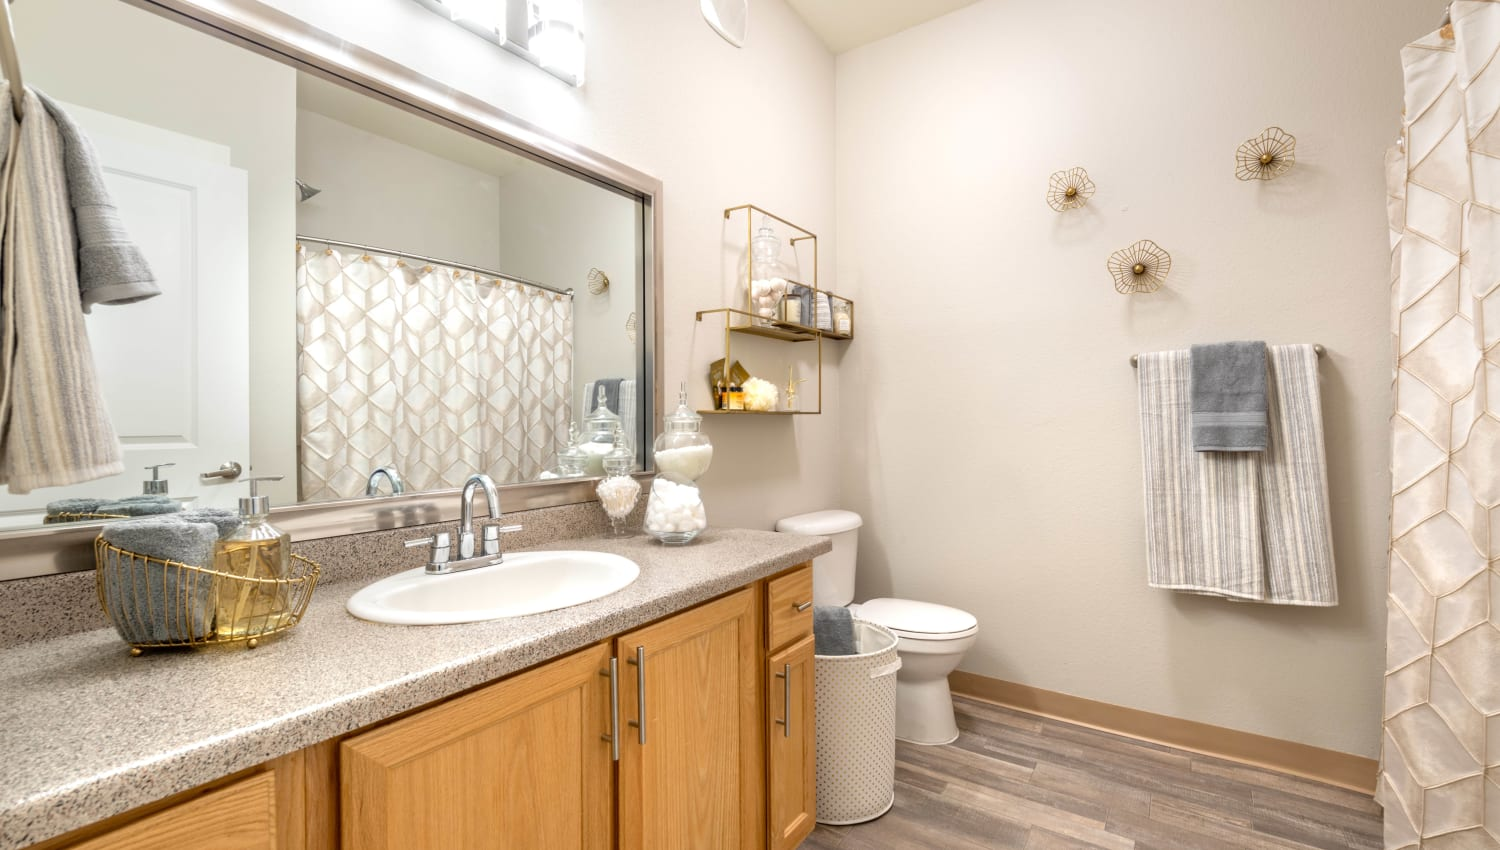 Quartz countertop in a model apartment's bathroom at Olympus Solaire in Albuquerque, New Mexico